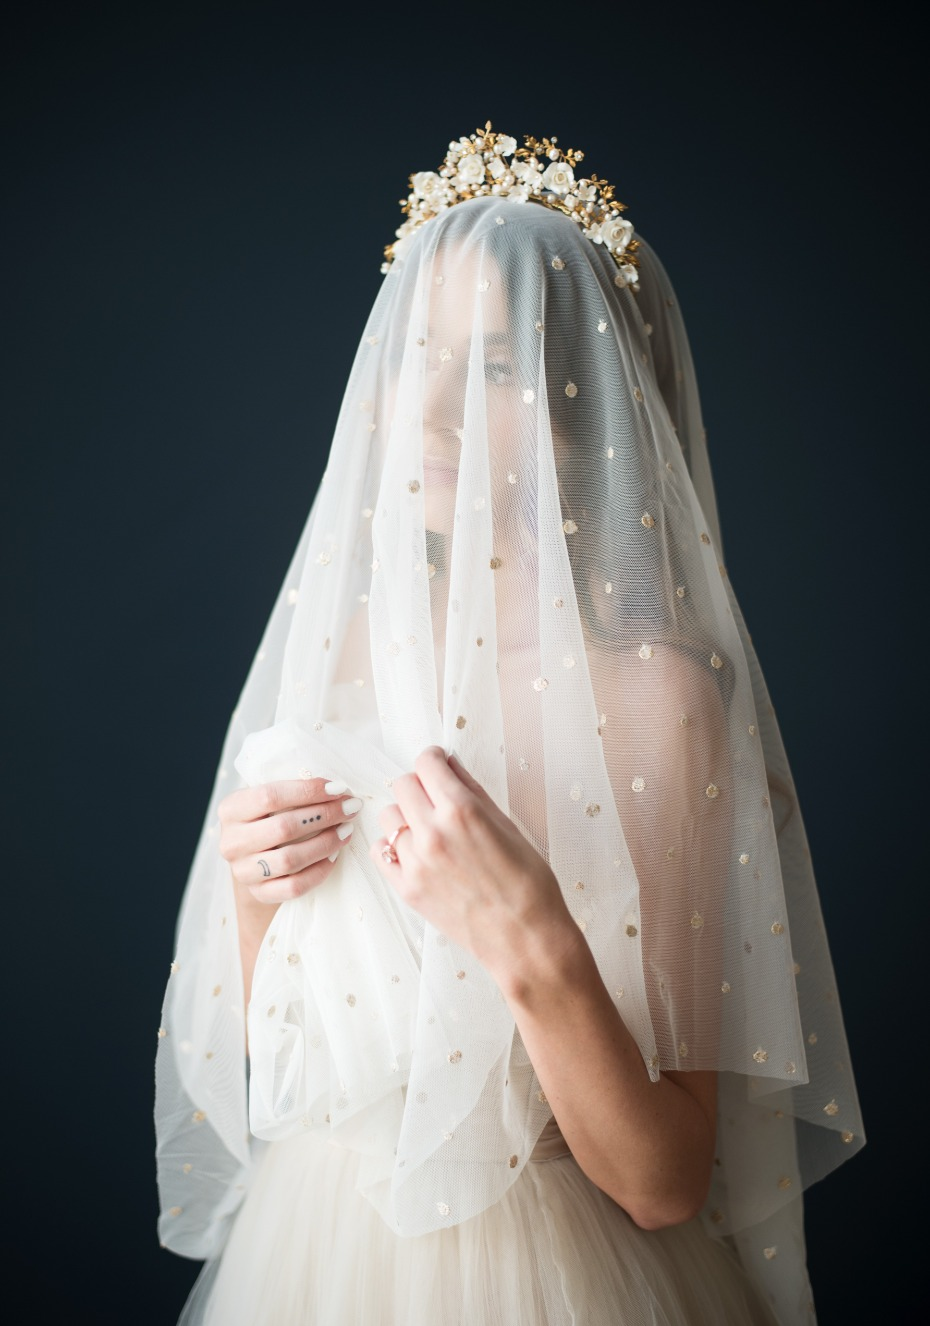 rose gold polka dot wedding veil by Sheeta Design